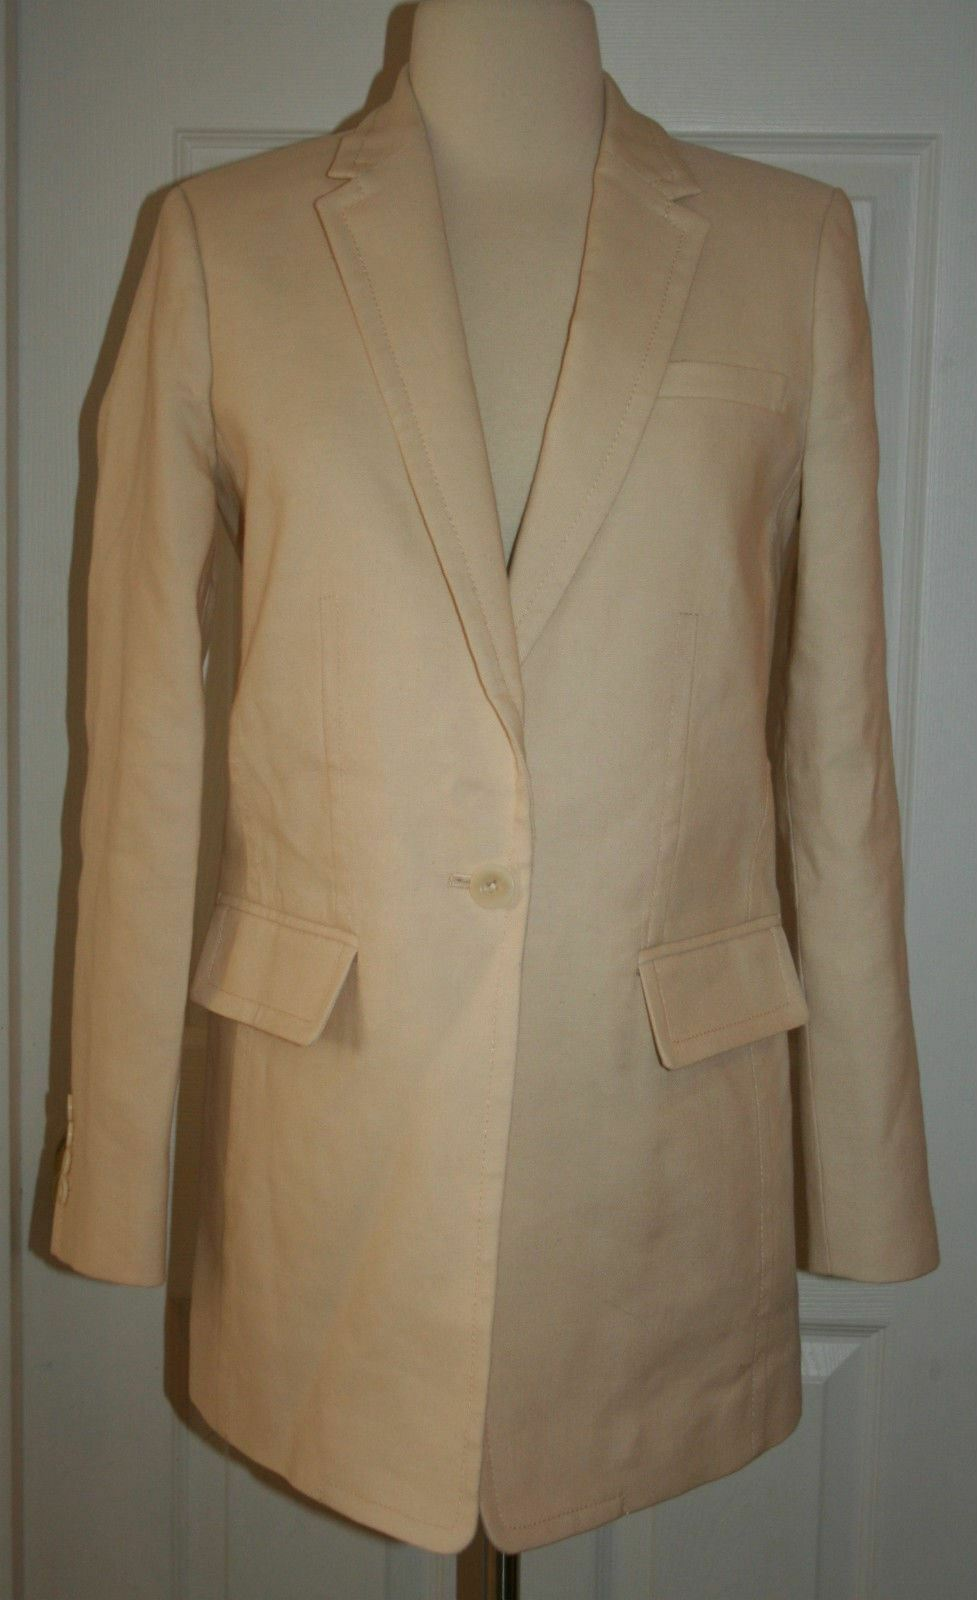 J.CREW COLLECTION LONG ONE-BUTTON BLAZER IN LINEN SIZE 0 IVORY RETAIL